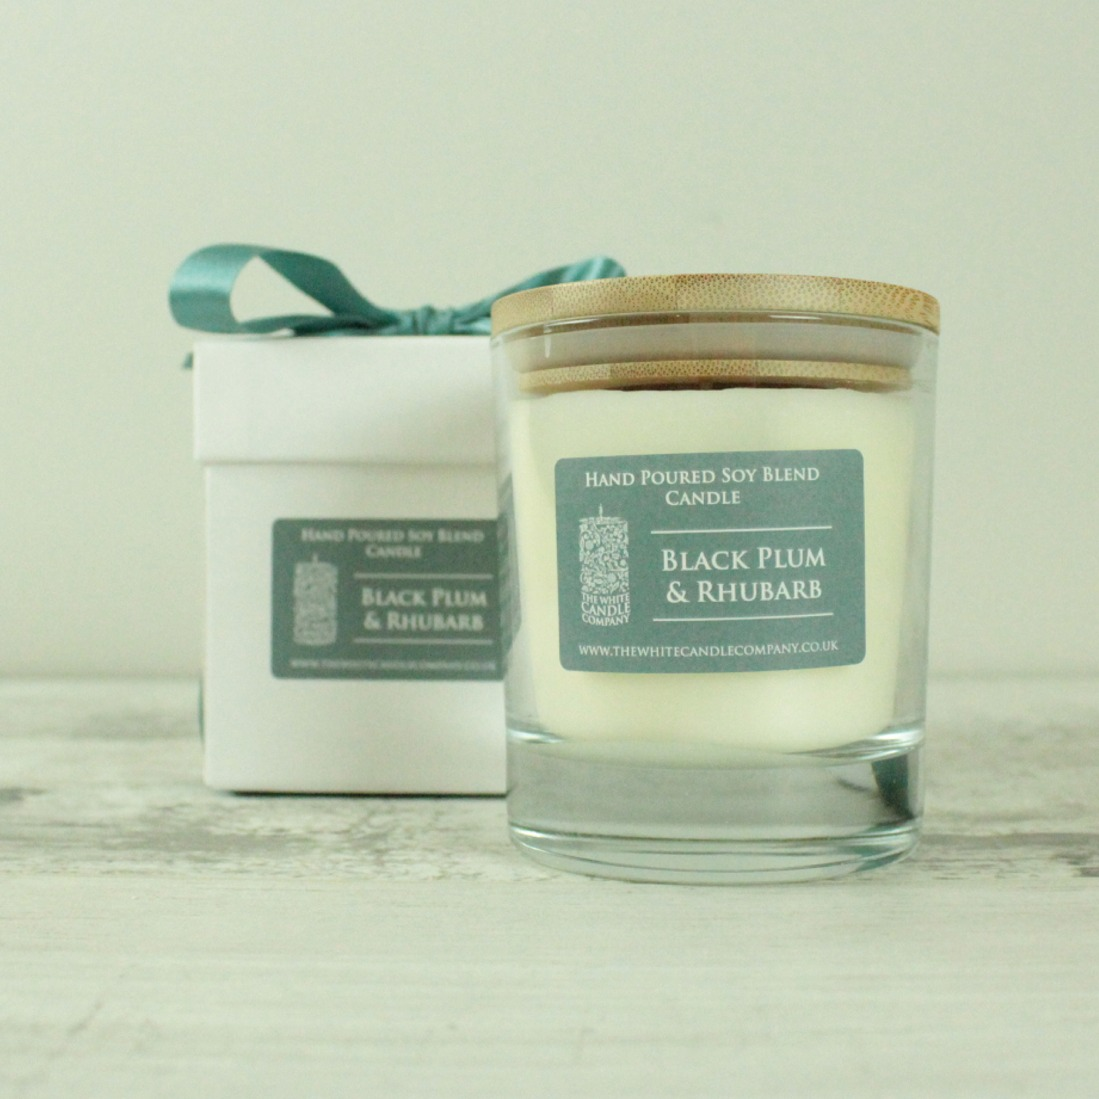 Black Plum & Rhubarb Scented Candle - 50hrs